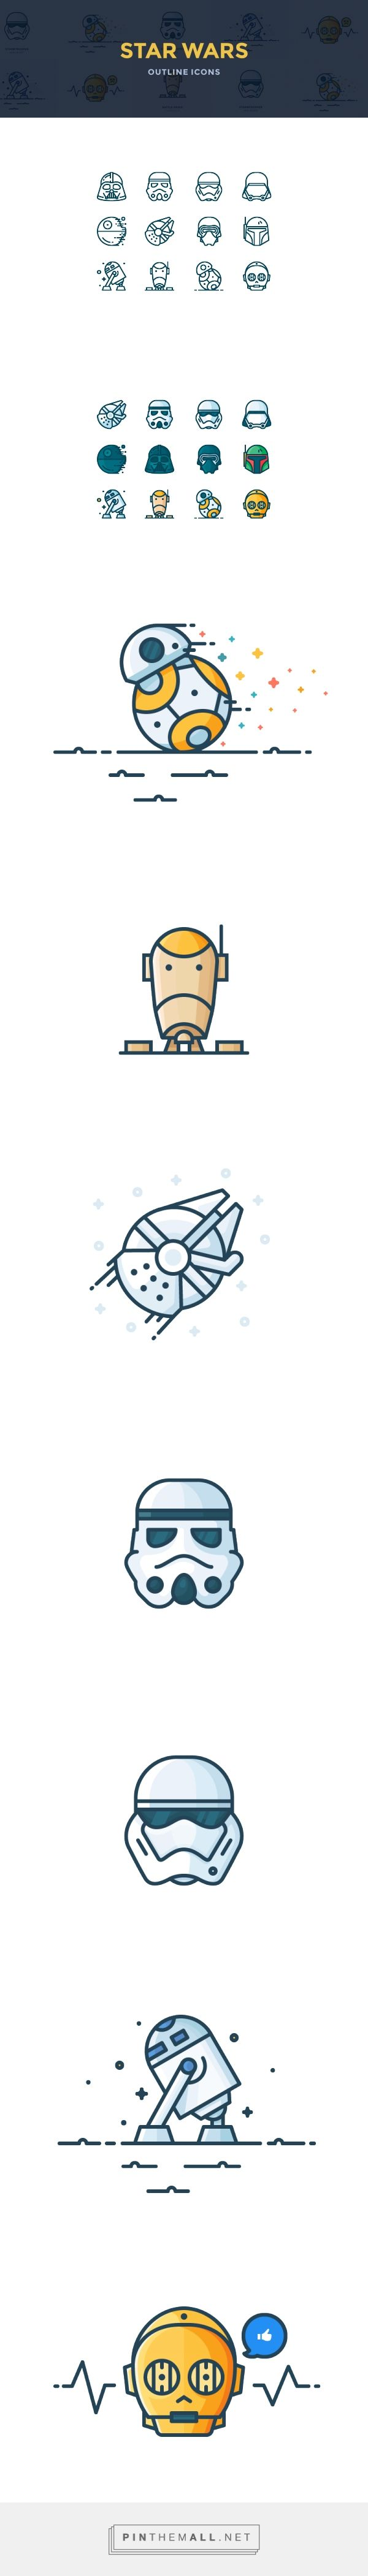 Outline Star Wars Icons on Behance - created via https://pinthemall.net